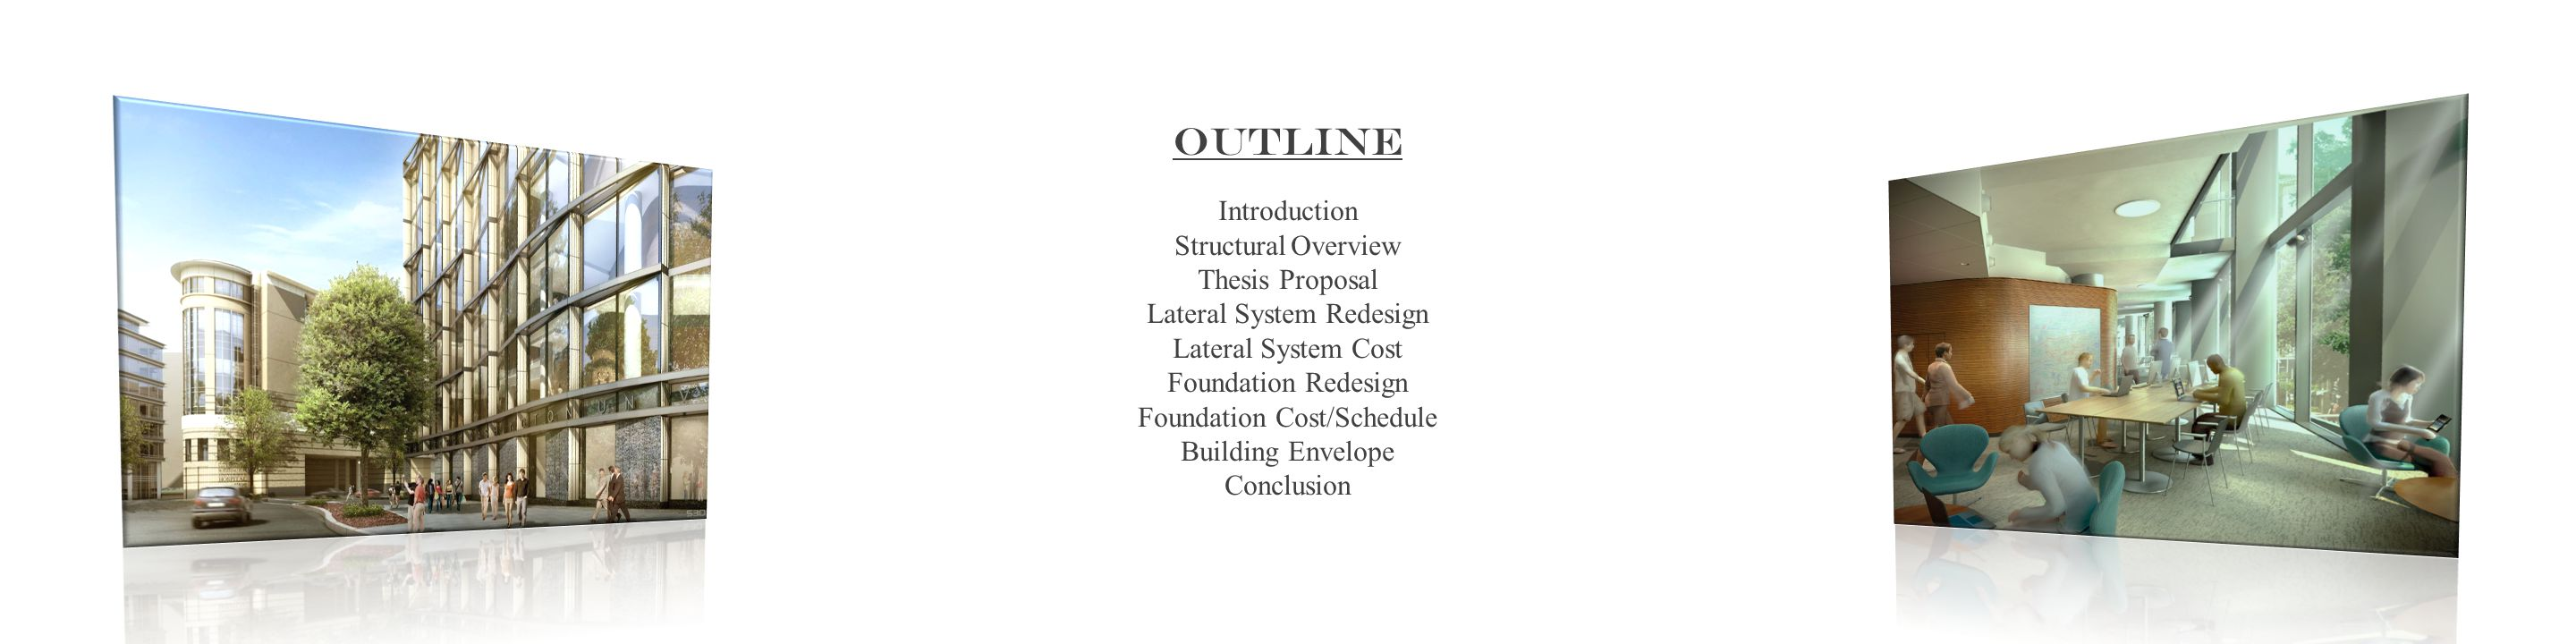 introduction thesis outline Some guidelines for thesis contents and writing  it also gives an outline of the thesis  introduction and conclusion should be the shortest ones.